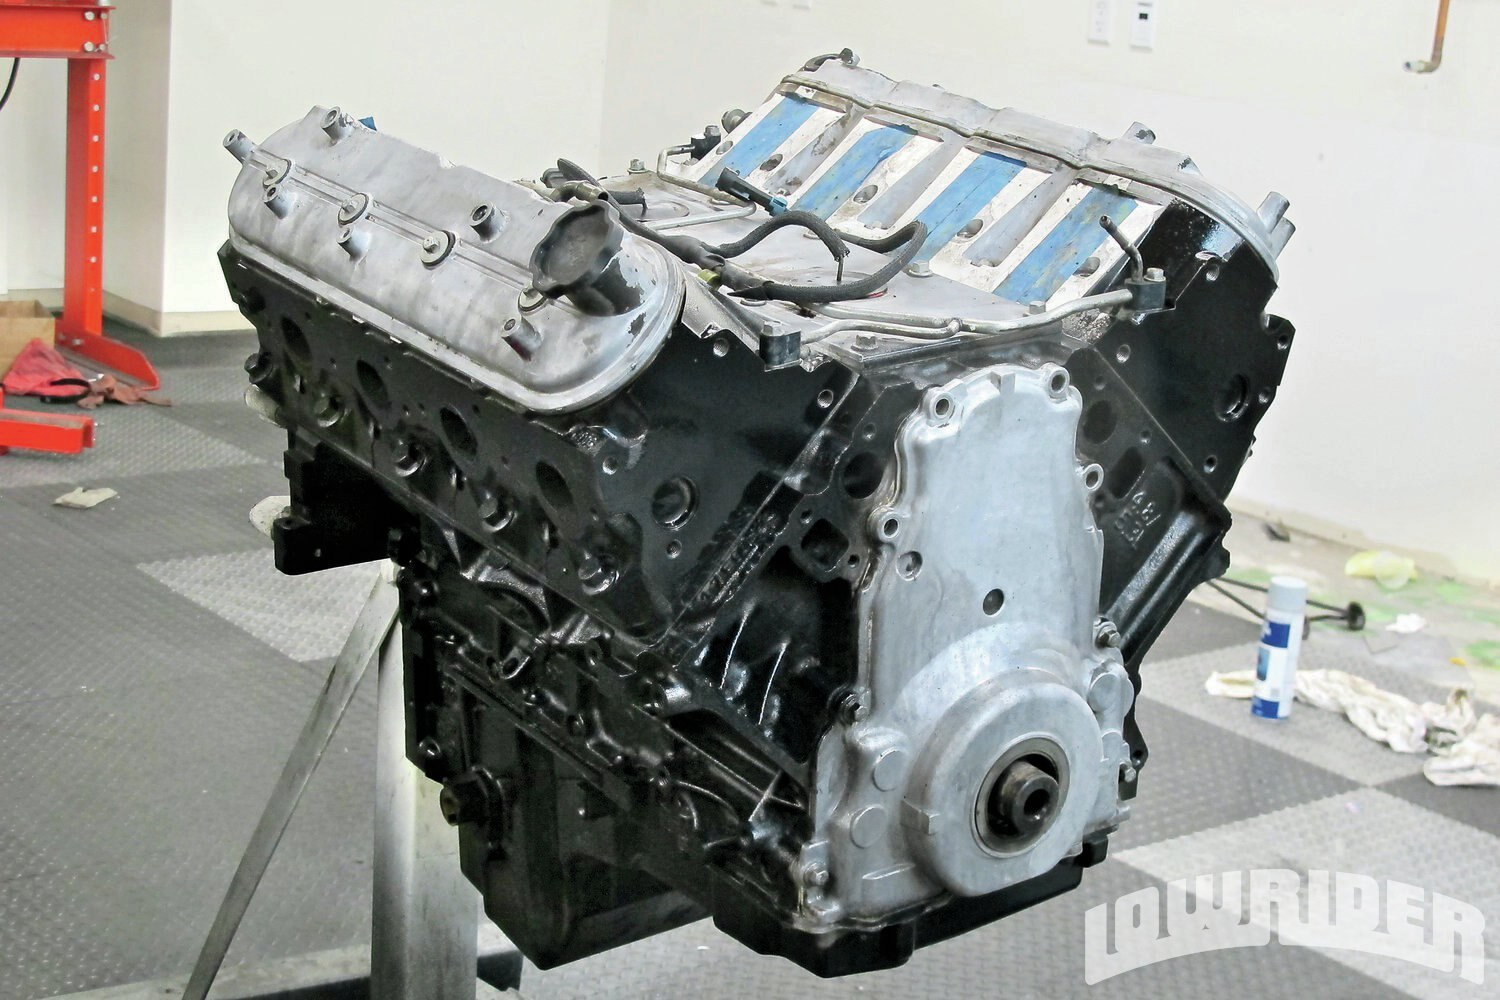 <strong>2</strong>. This low-mileage 5.3 engine block had been tested and was ready for us to mock up the restomod pulley system.